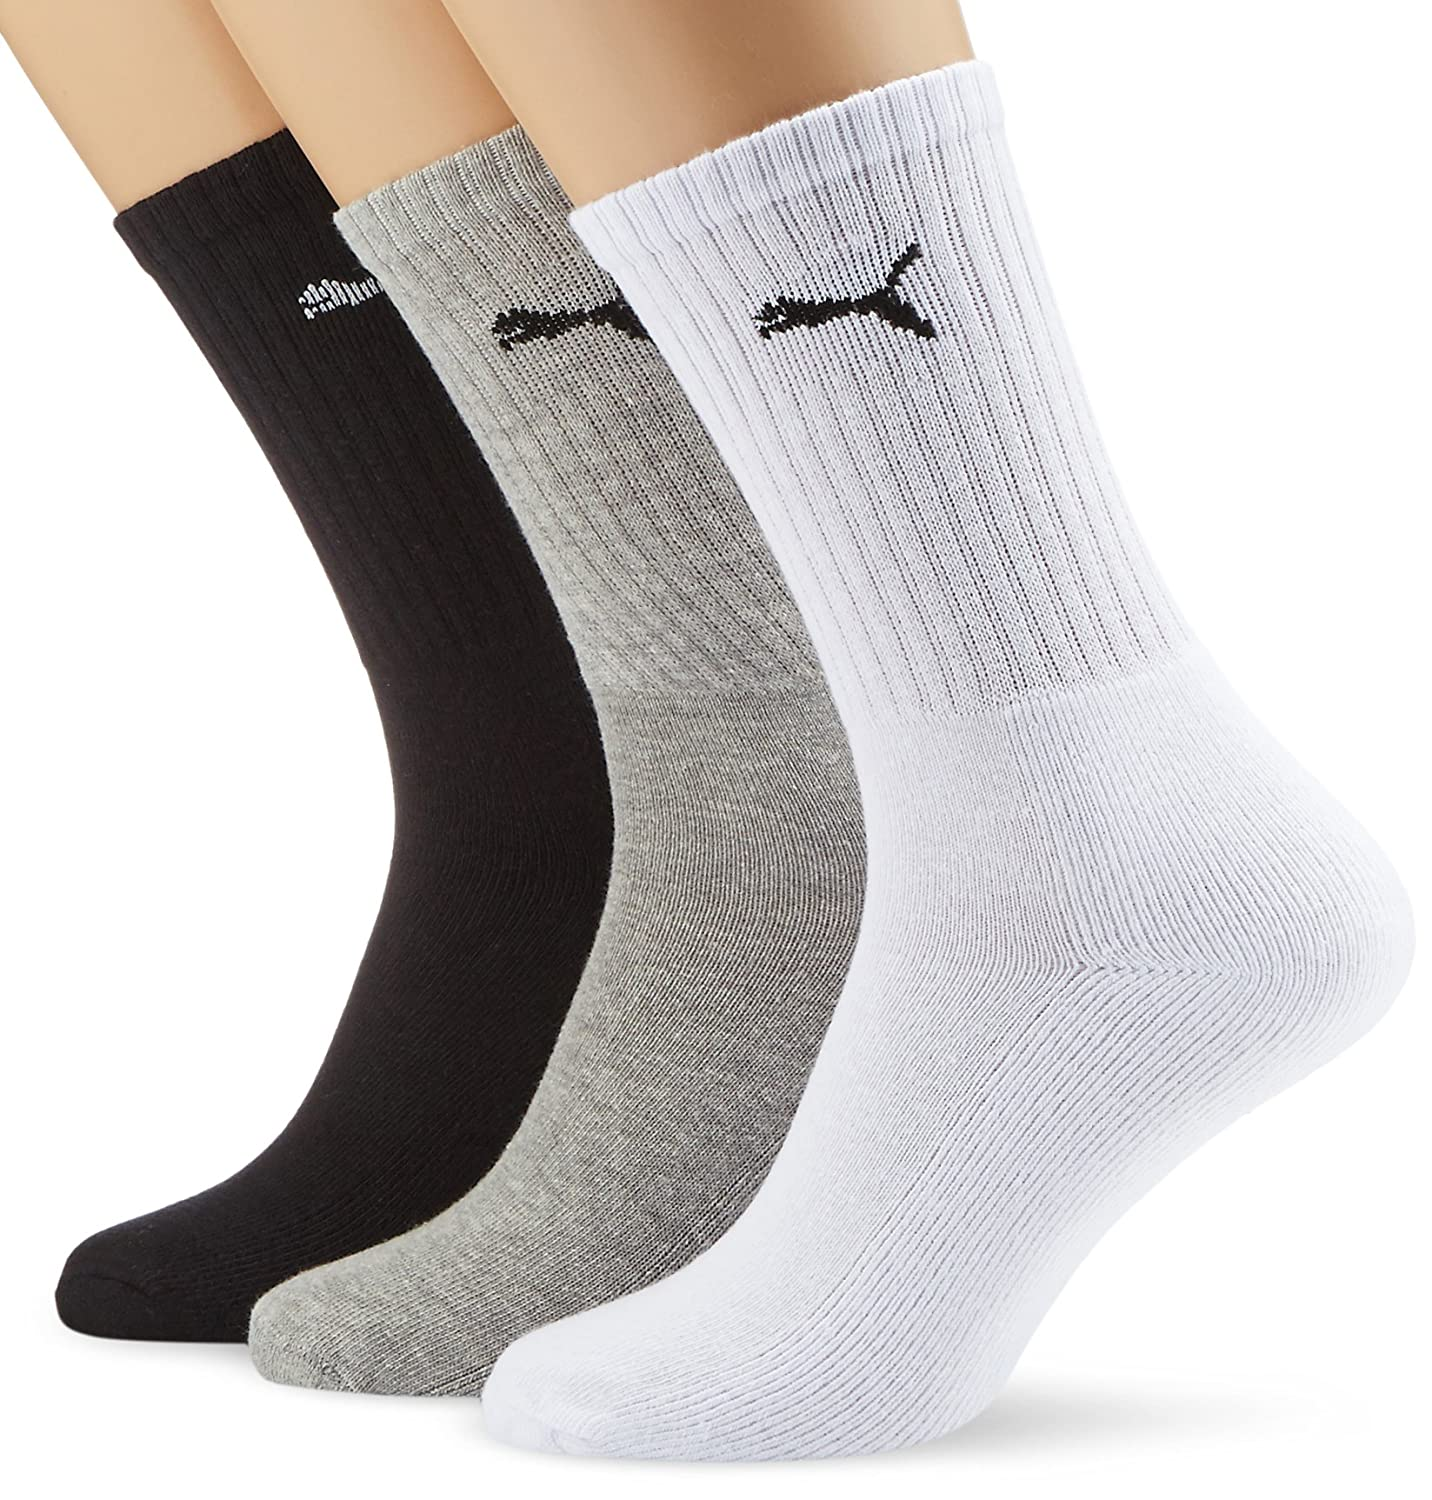 Puma Mens Pack Of 3 Pairs Of Cotton Tennis Socks With Boucle Interior at Amazon Mens Clothing store: